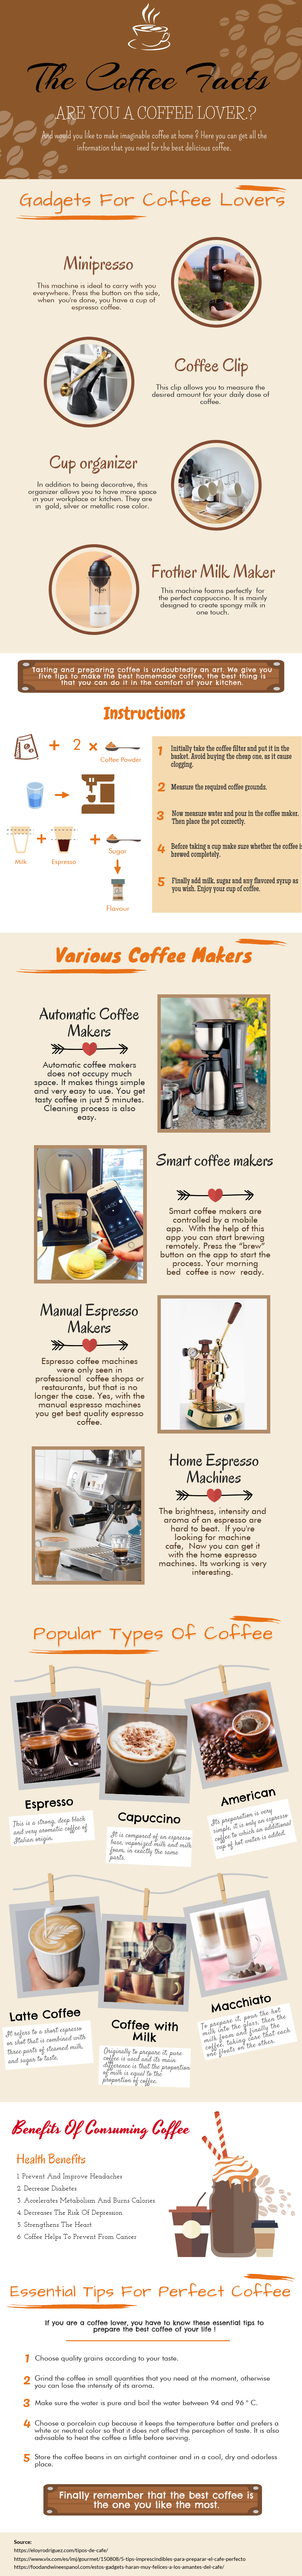 HOW TO PREPARE THE PERFECT CUP OF COFFEE?